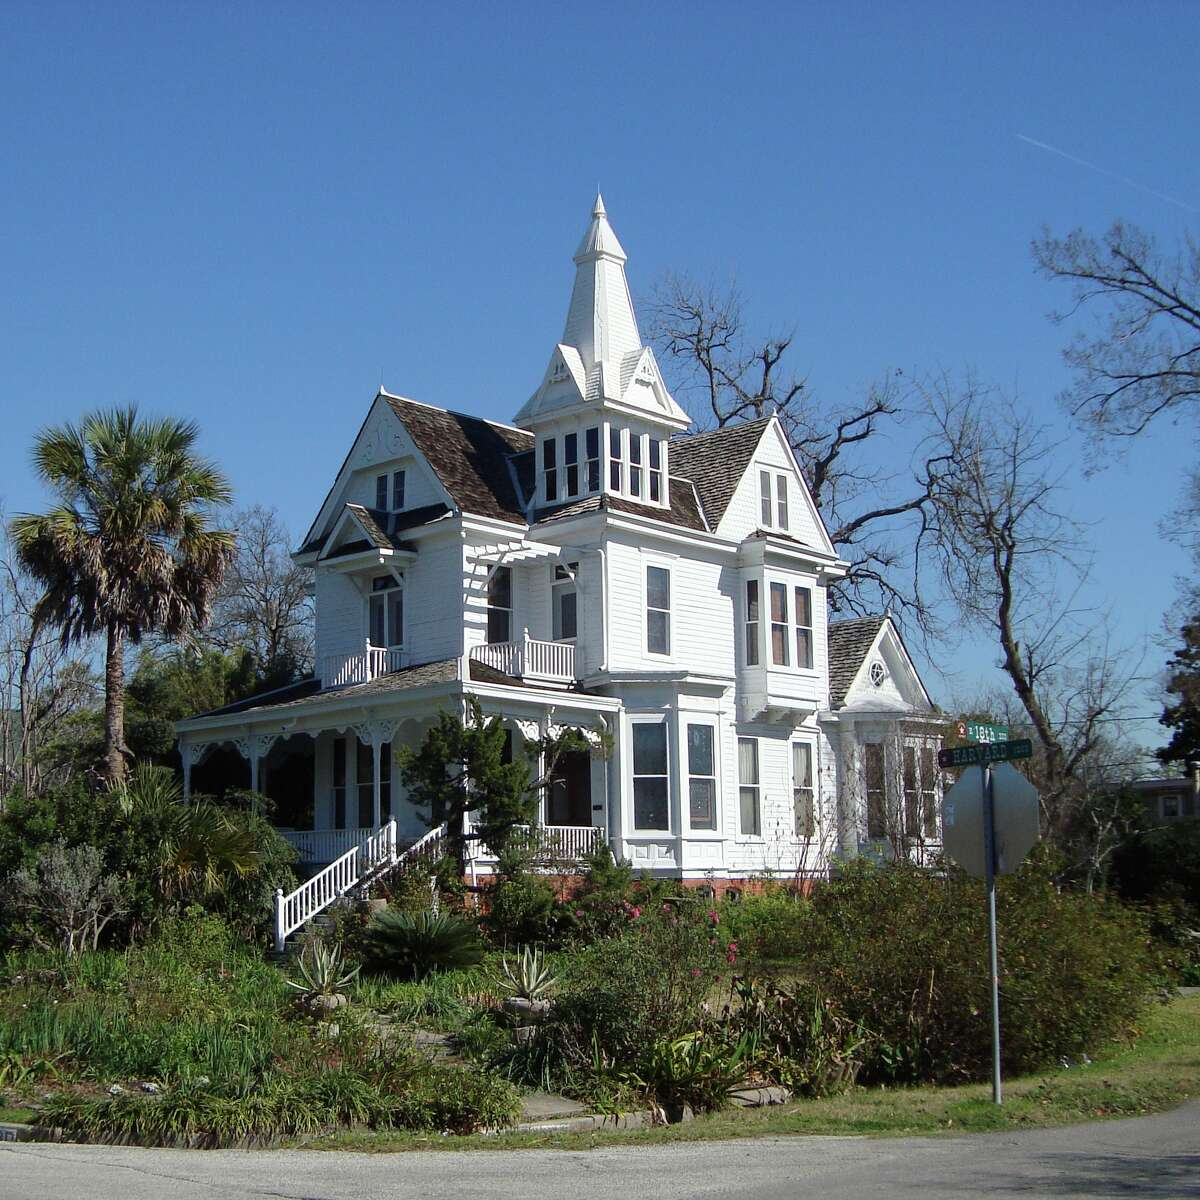 The Mansfield House, built around 1900, is part of the Architecture Center Houston's bicycle tour of the Heights neighborhood.